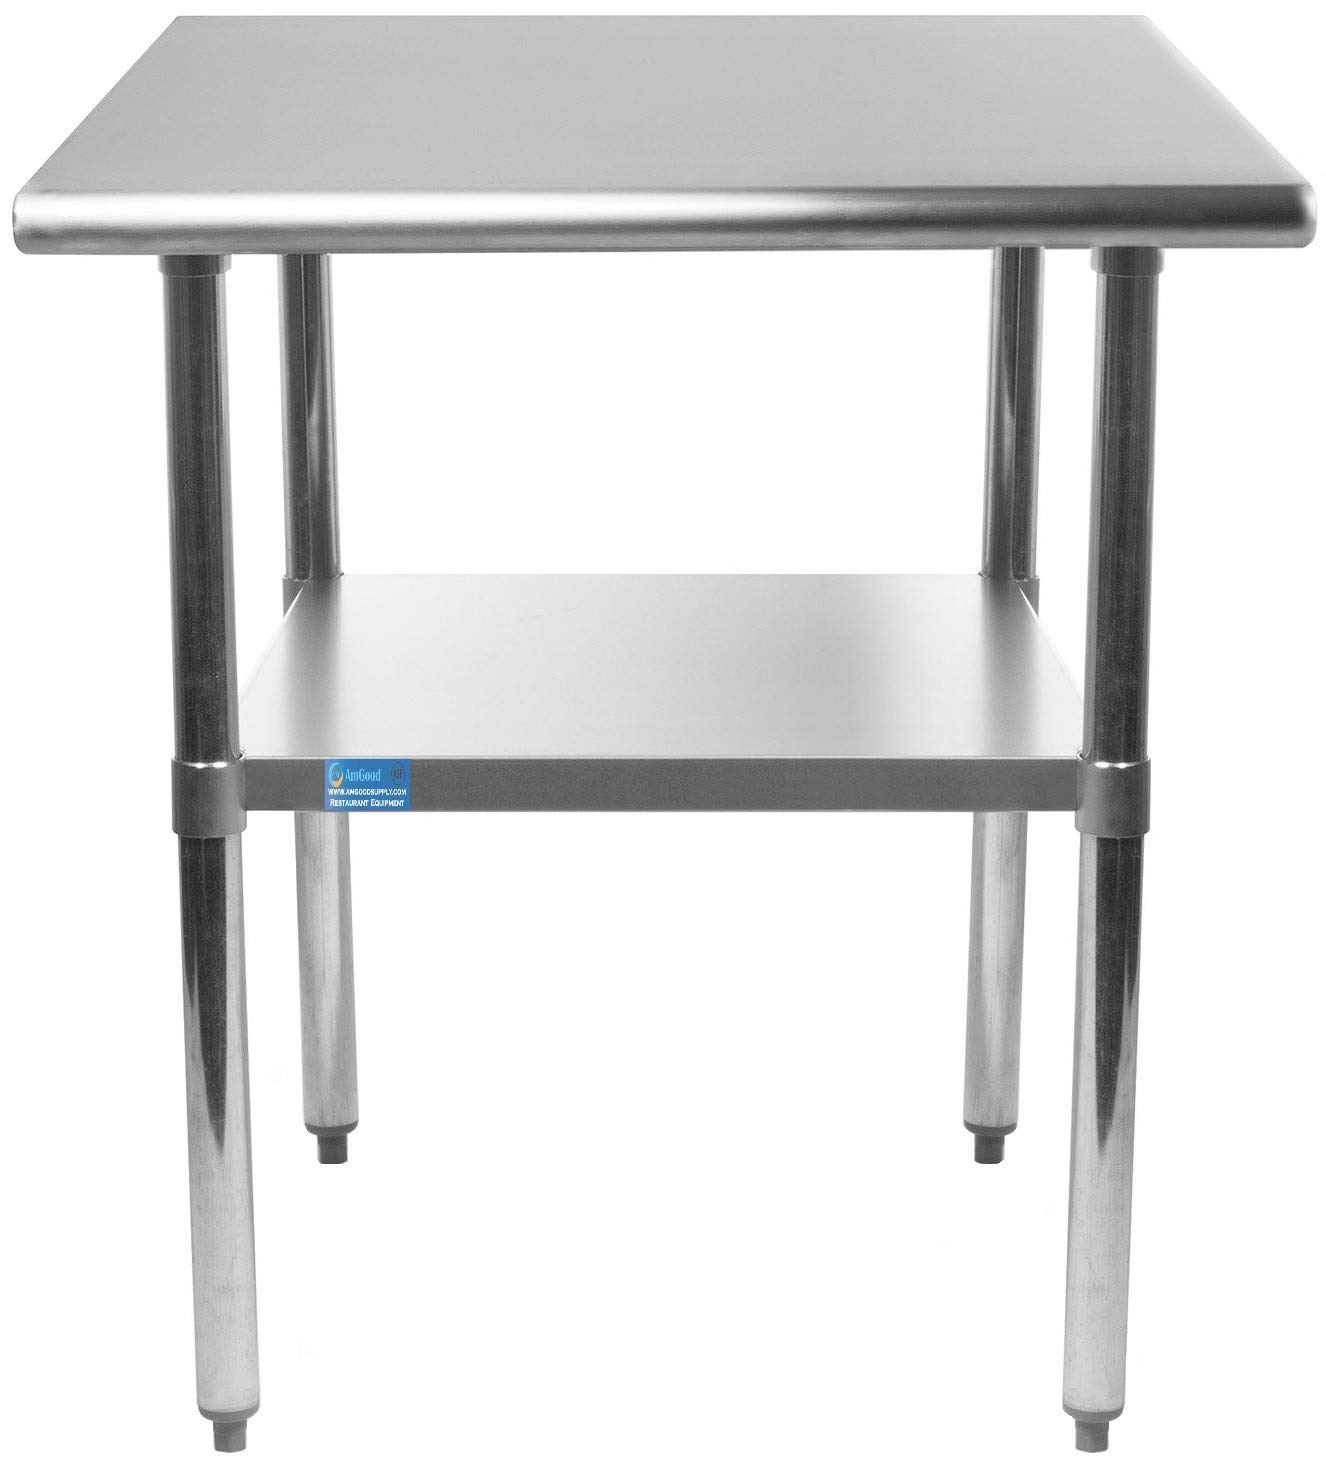 AmGood 24'' X 12'' Stainless Steel Work Table with Under-Shelf | NSF Kitchen Island Food Prep | Laundry Garage Utility Bench